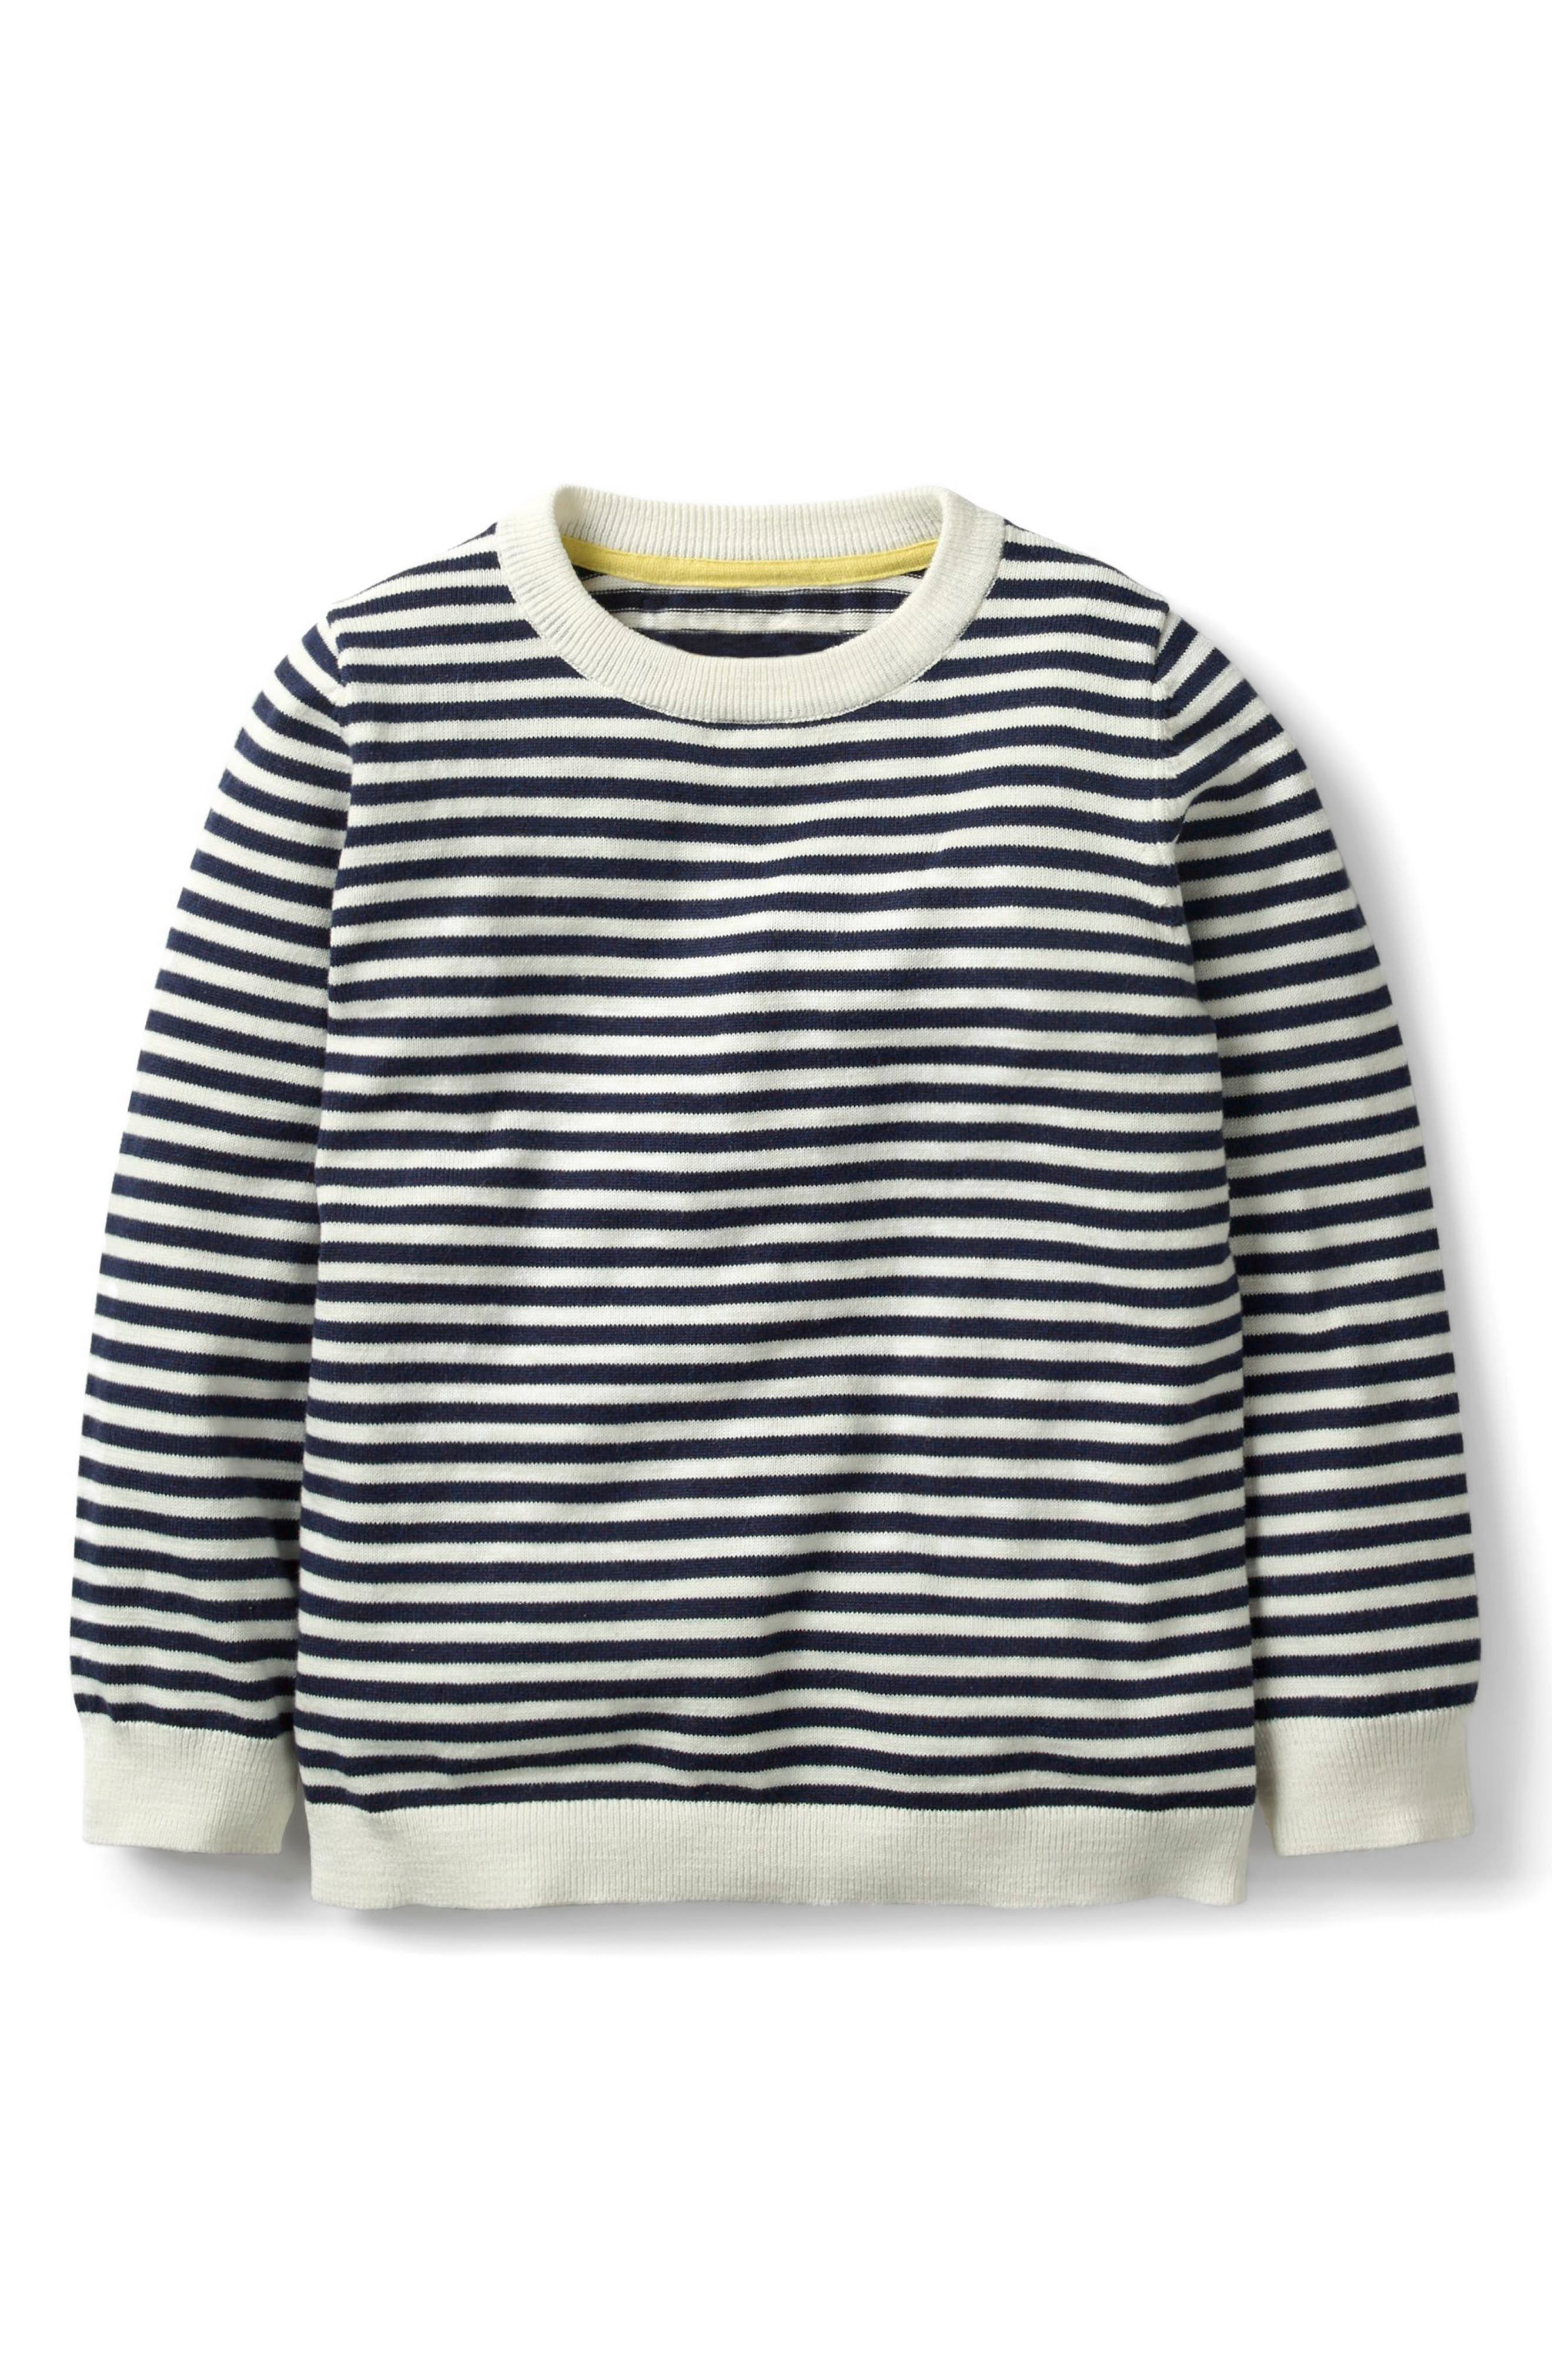 Cotton & Cashmere Sweater,                             Main thumbnail 1, color,                             School Navy/ Ivory